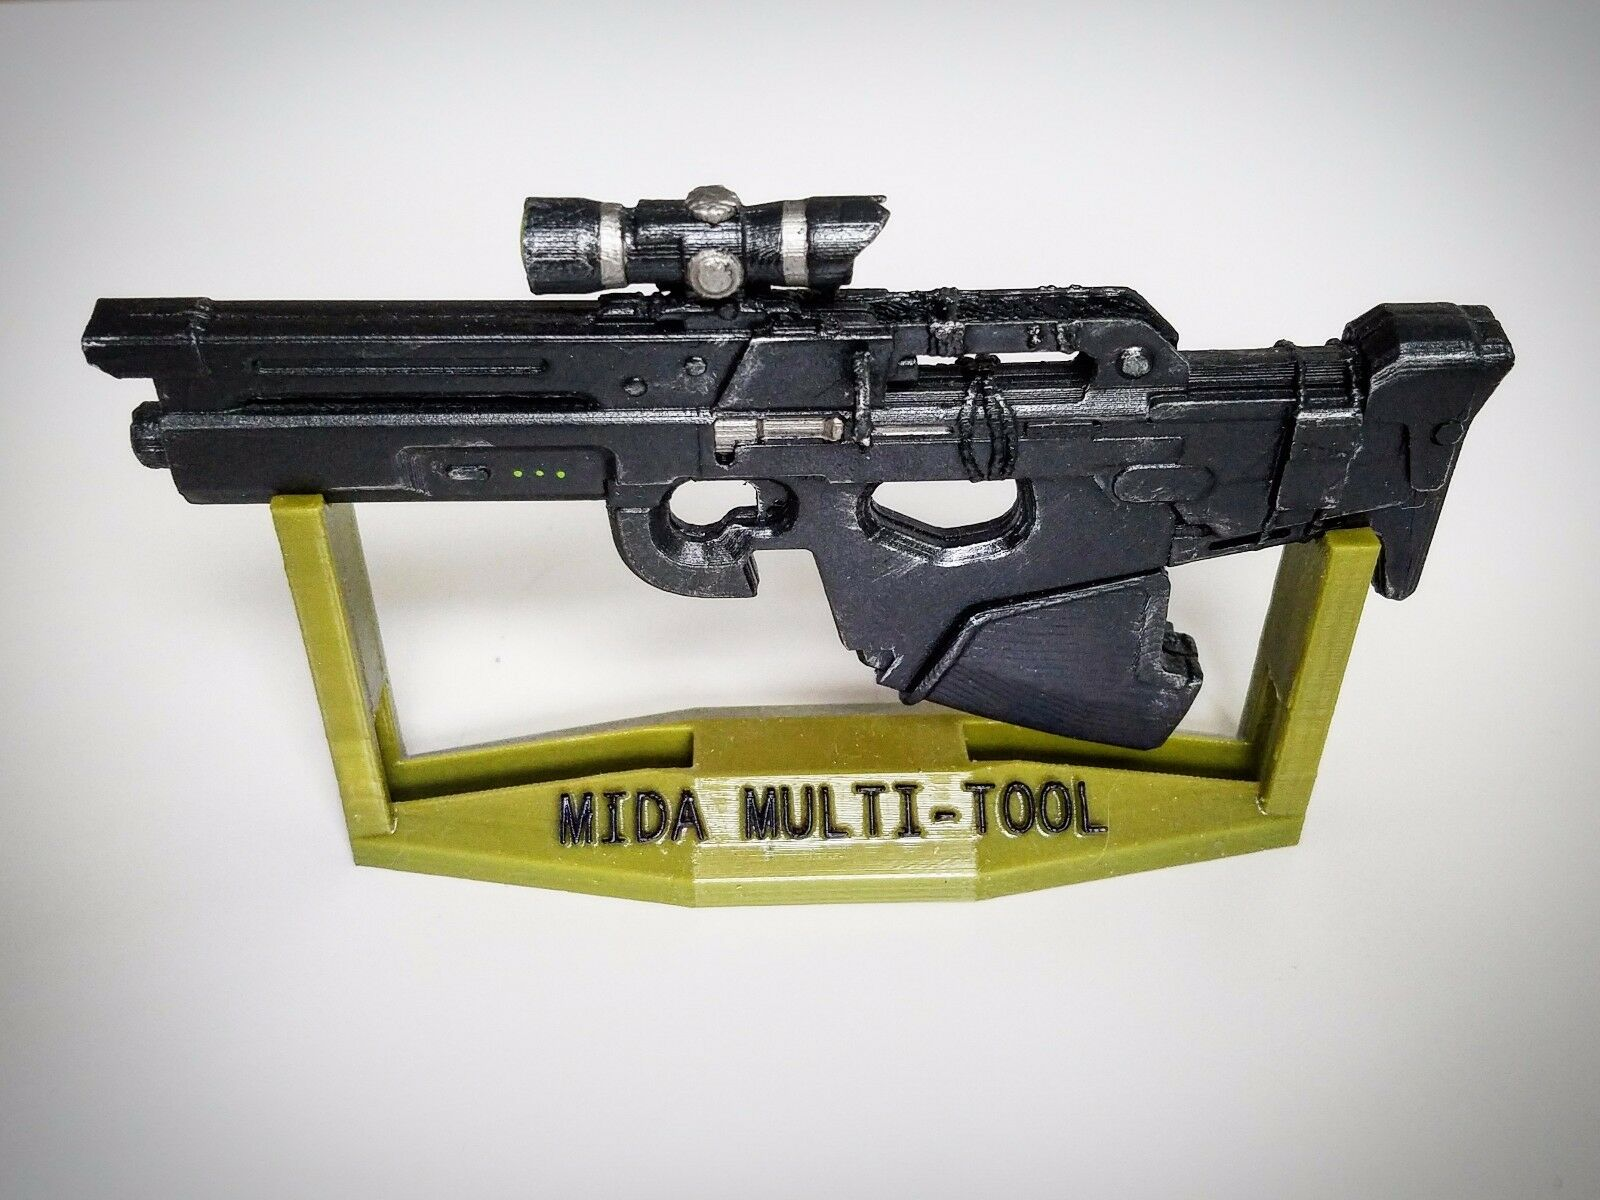 MIDA Multi Tool - Destiny 2 Scout Rifle - Special OPS Mini R